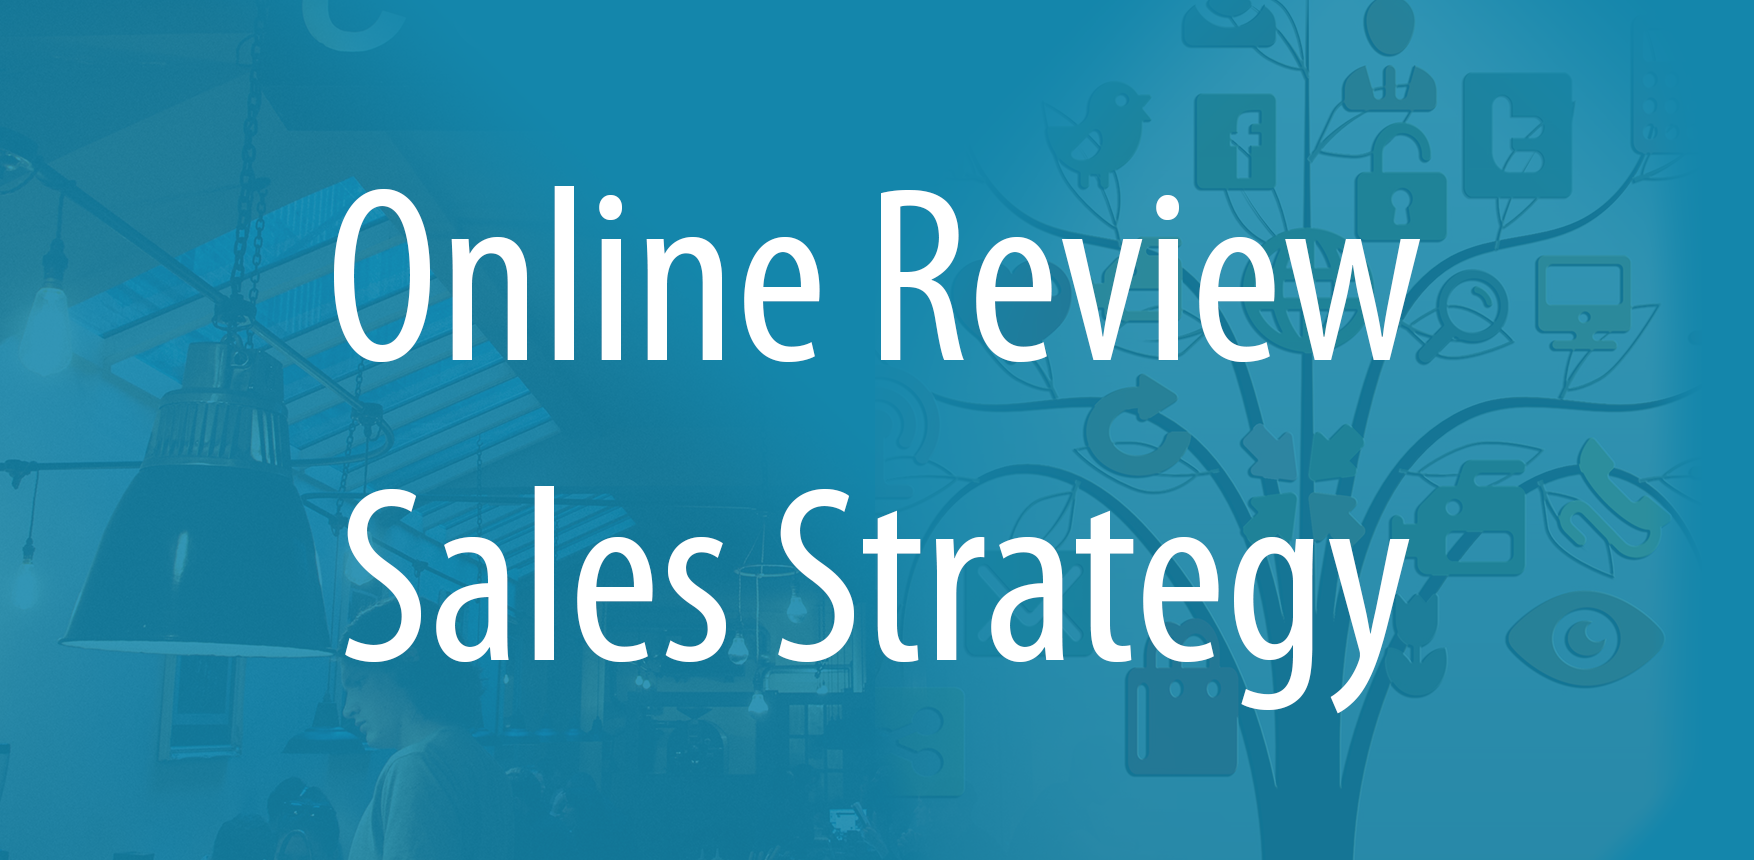 Mobile App Reseller Sales Tactics – Get More Reviews on Yelp, Facebook, and Google